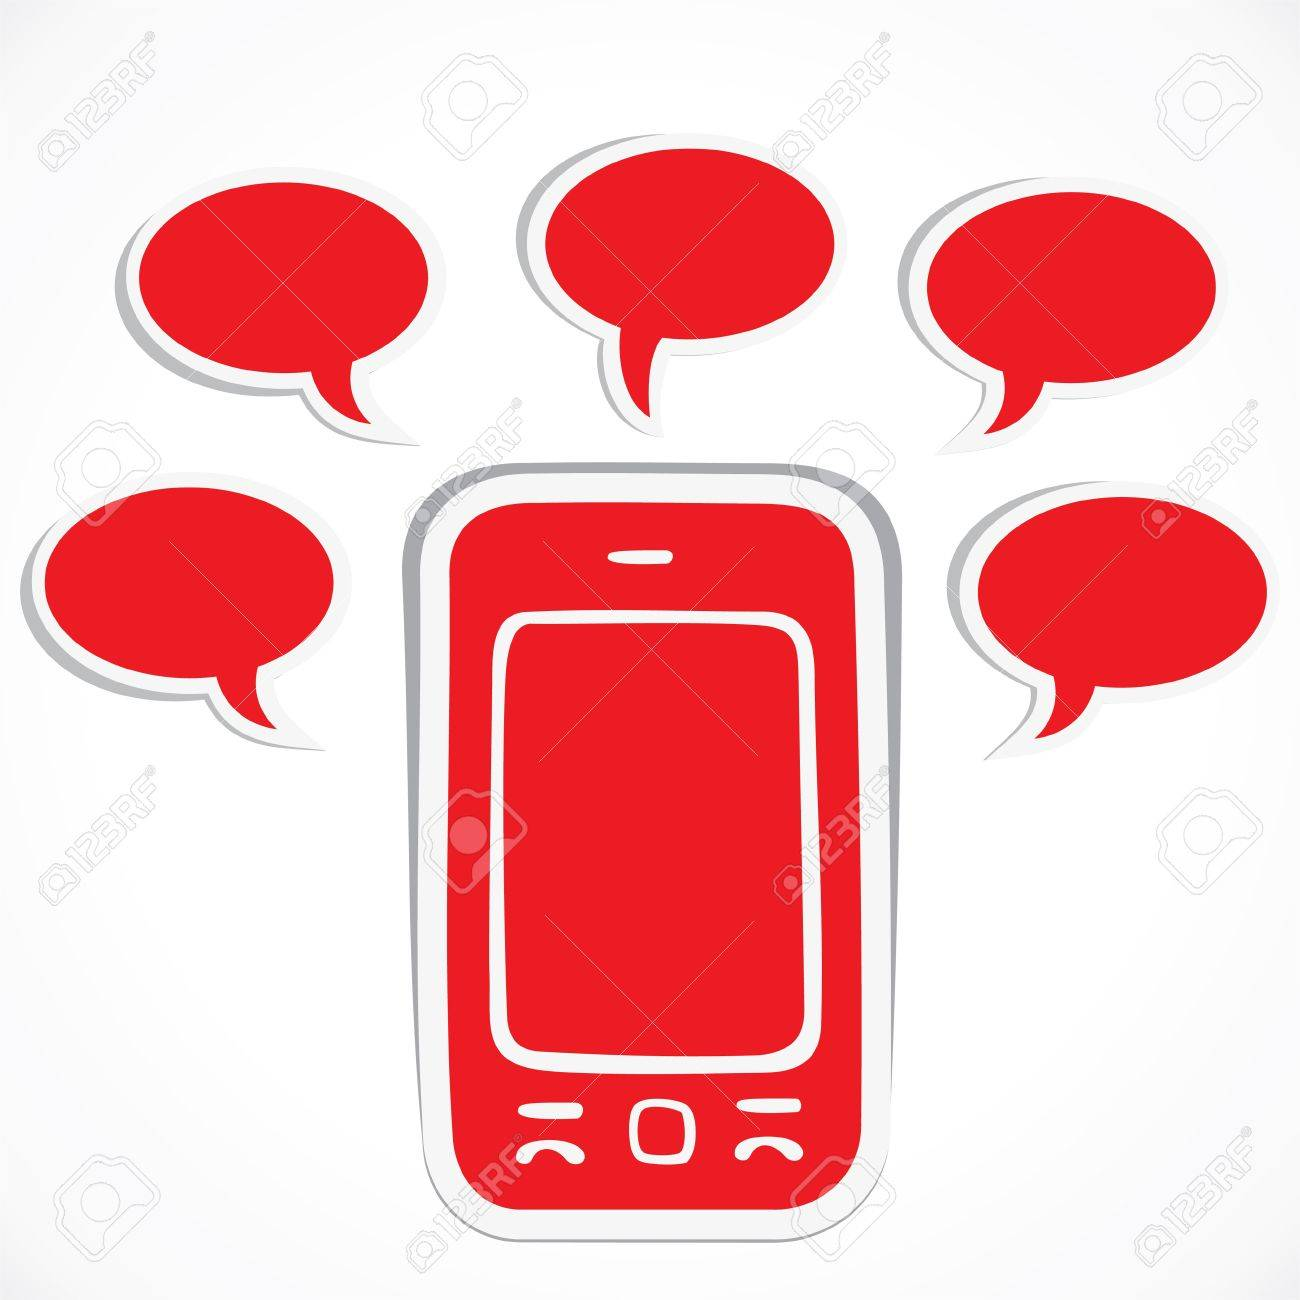 red mobile with message bubble stock vector Stock Vector - 16901728